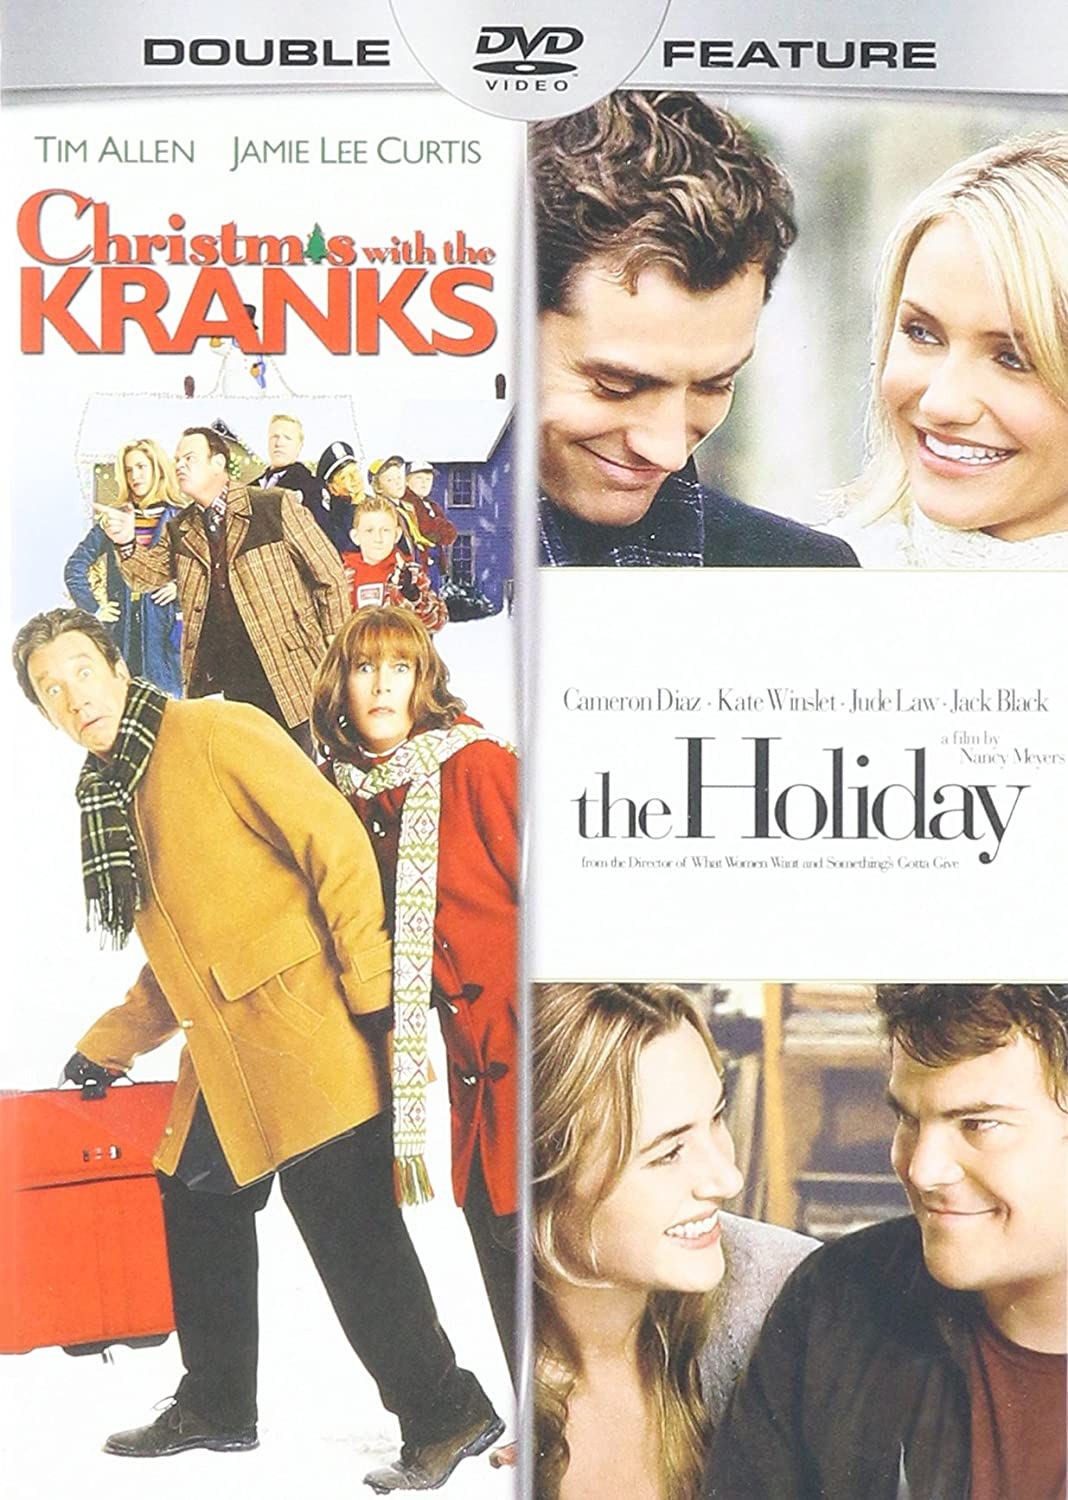 Amazon.com: The Christmas with the Kranks / Holiday: Movies & TV